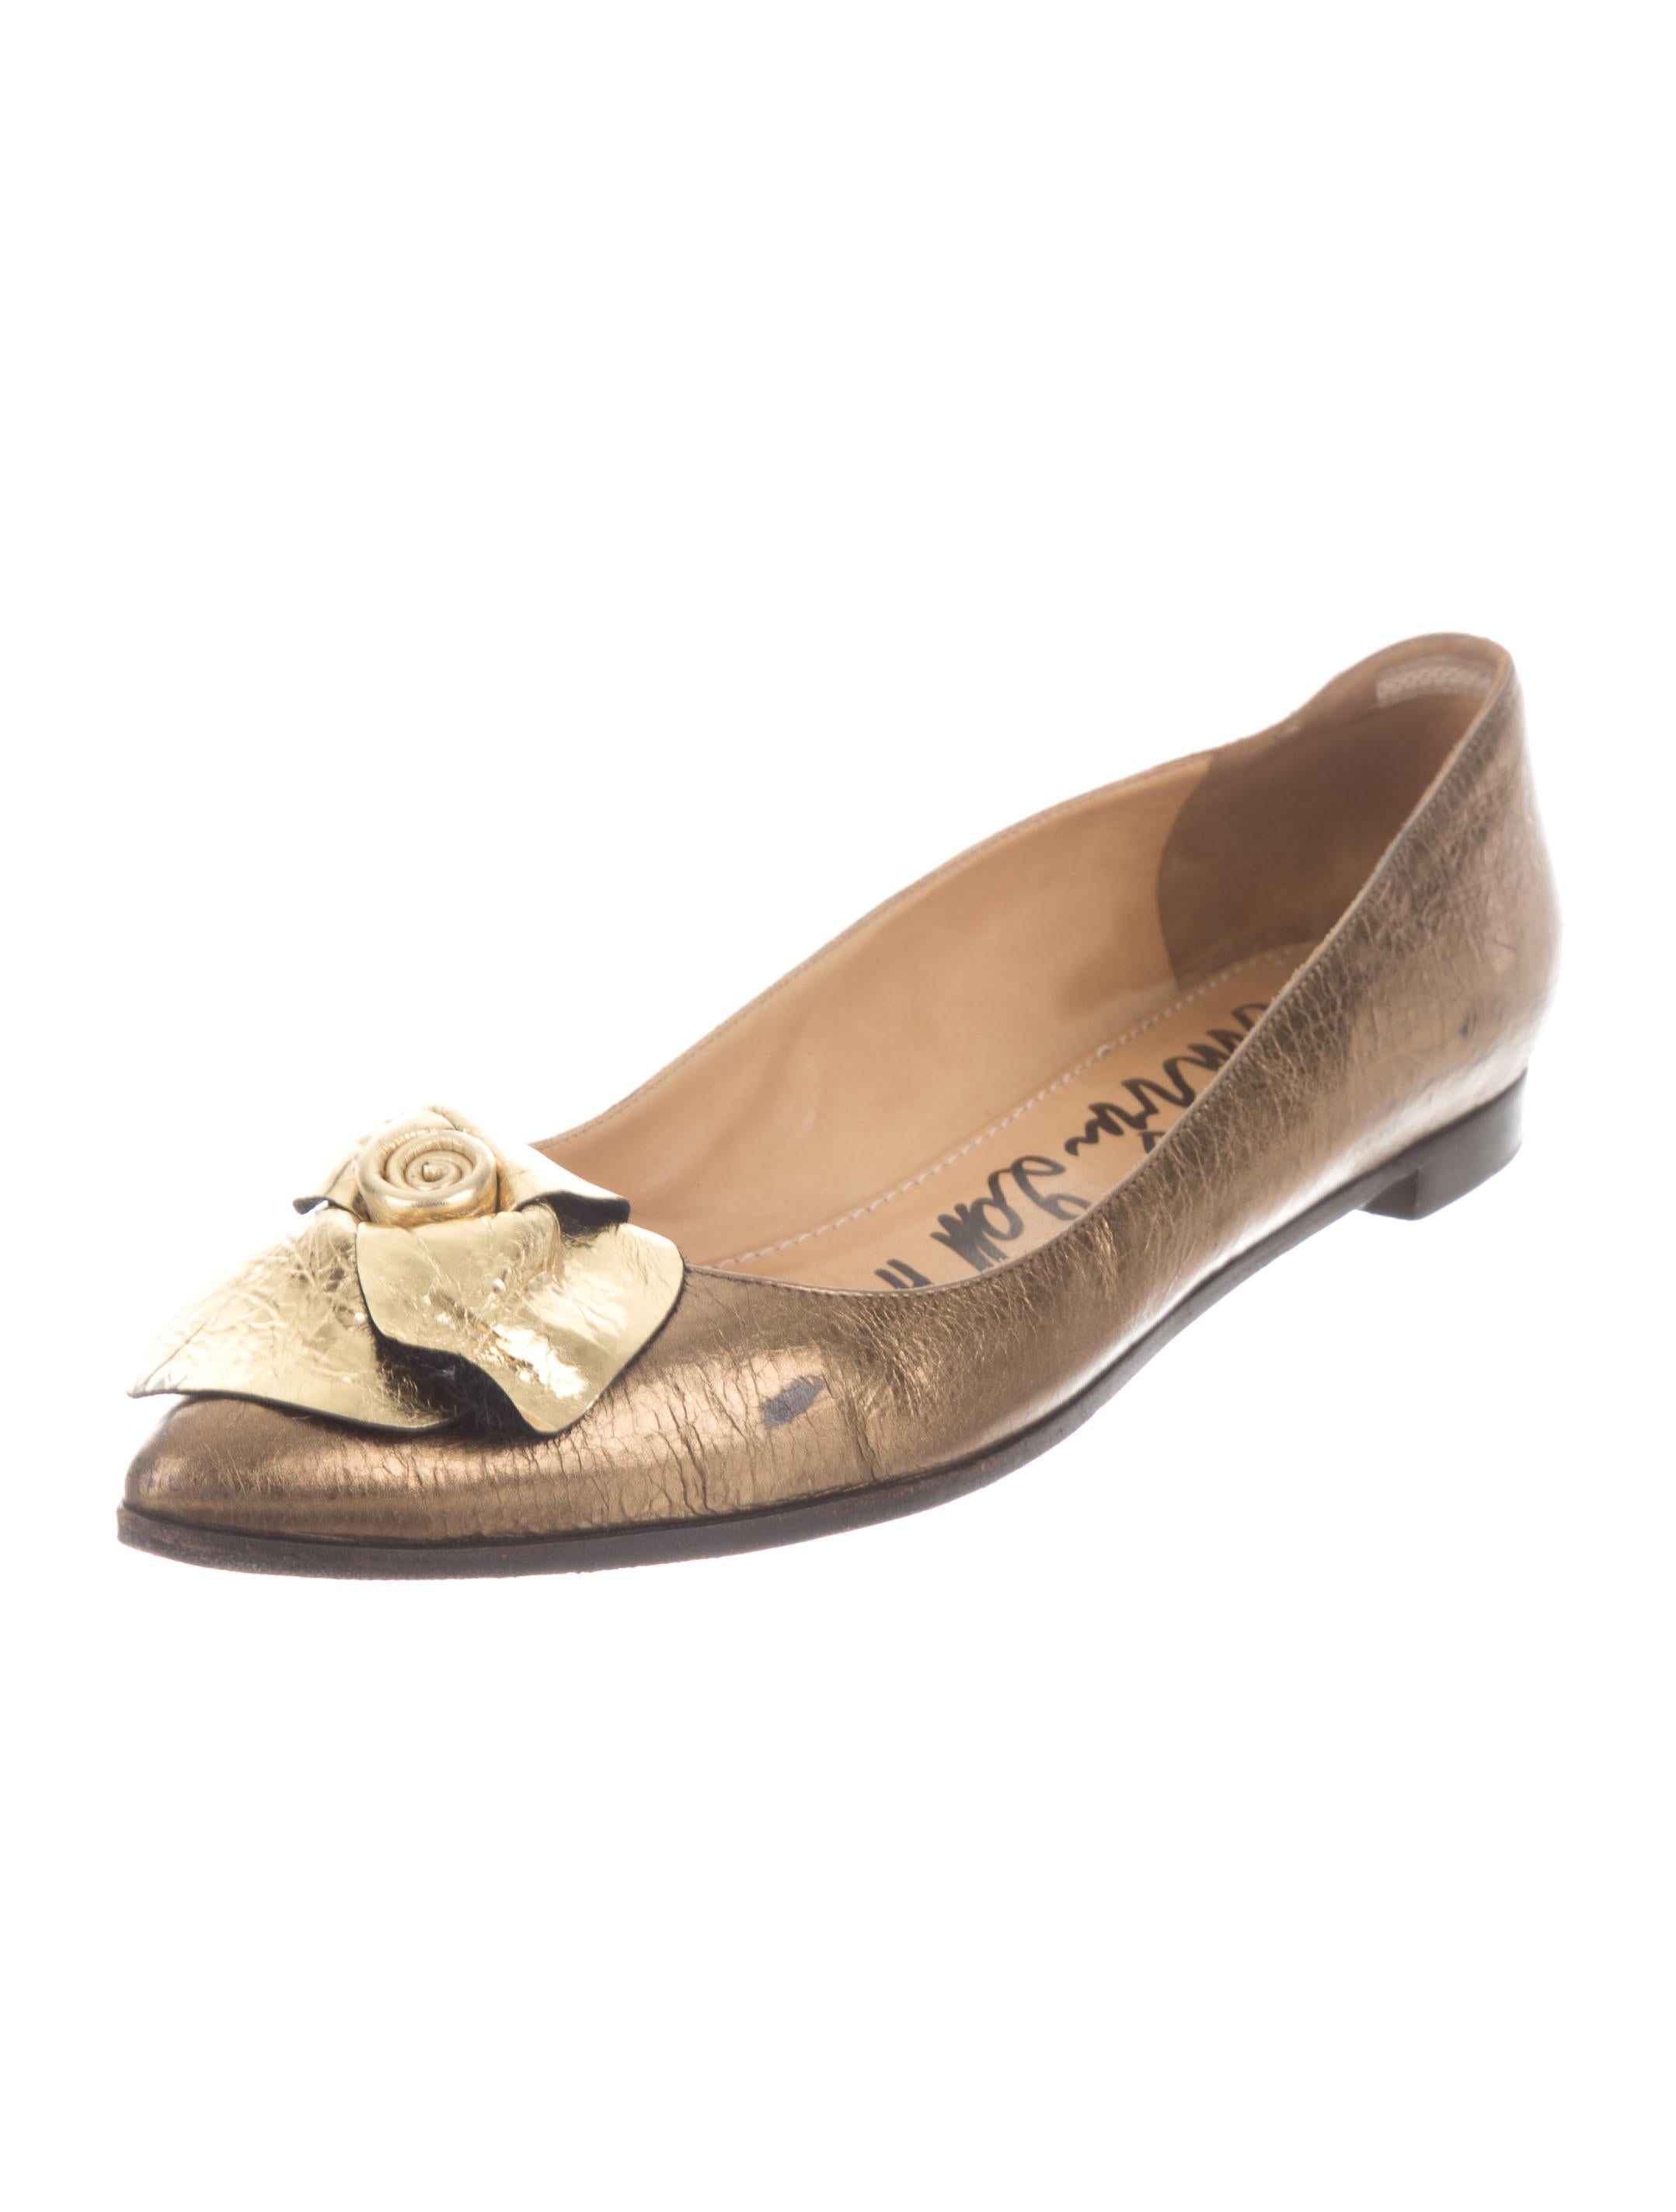 order cost cheap price Lanvin Metallic Floral-Accented Flats sale cost CMh4YMf7